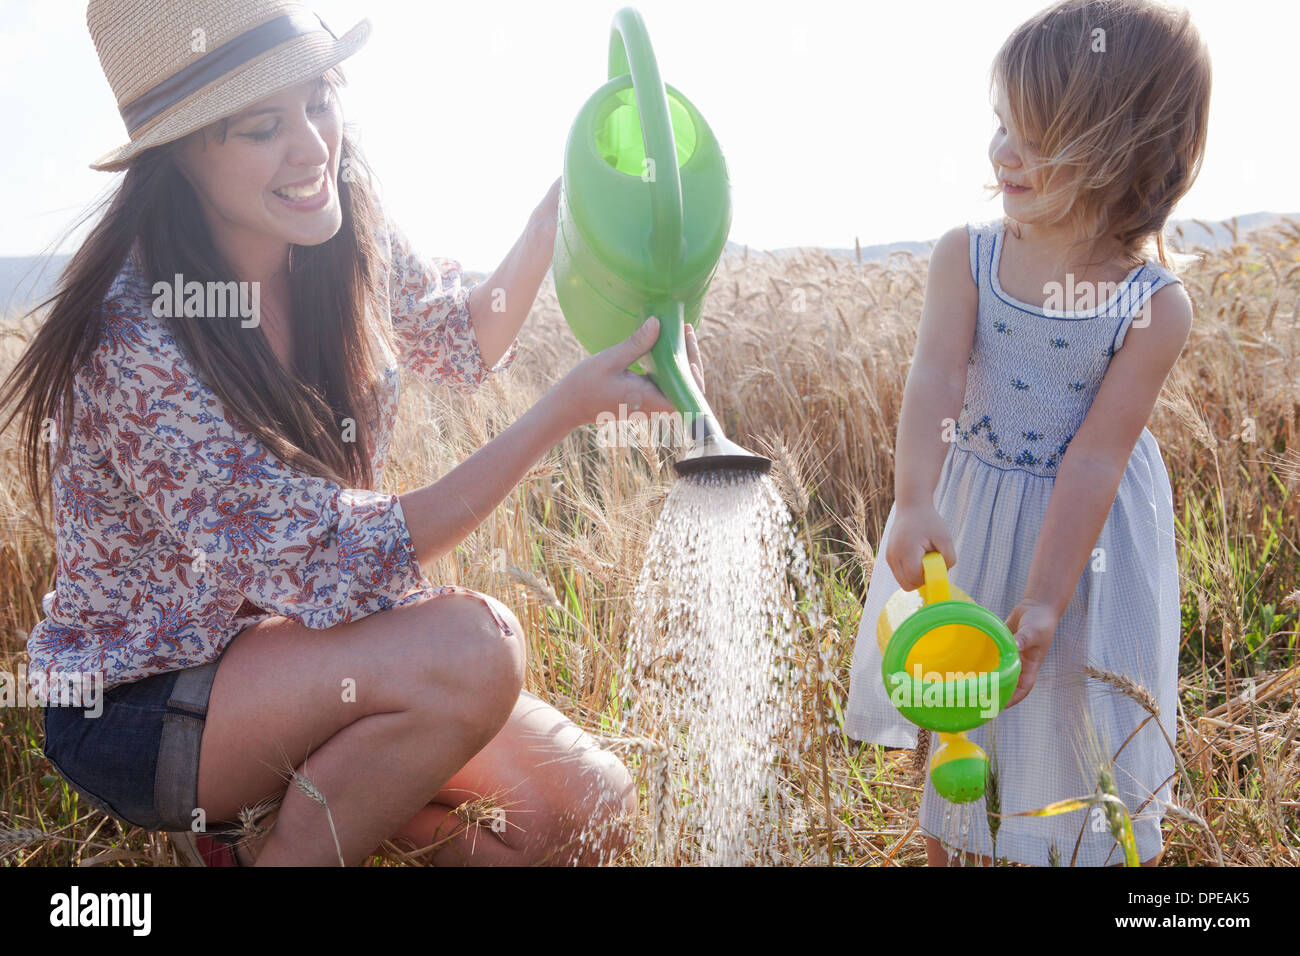 Mother and daughter in wheat field with watering cans - Stock Image